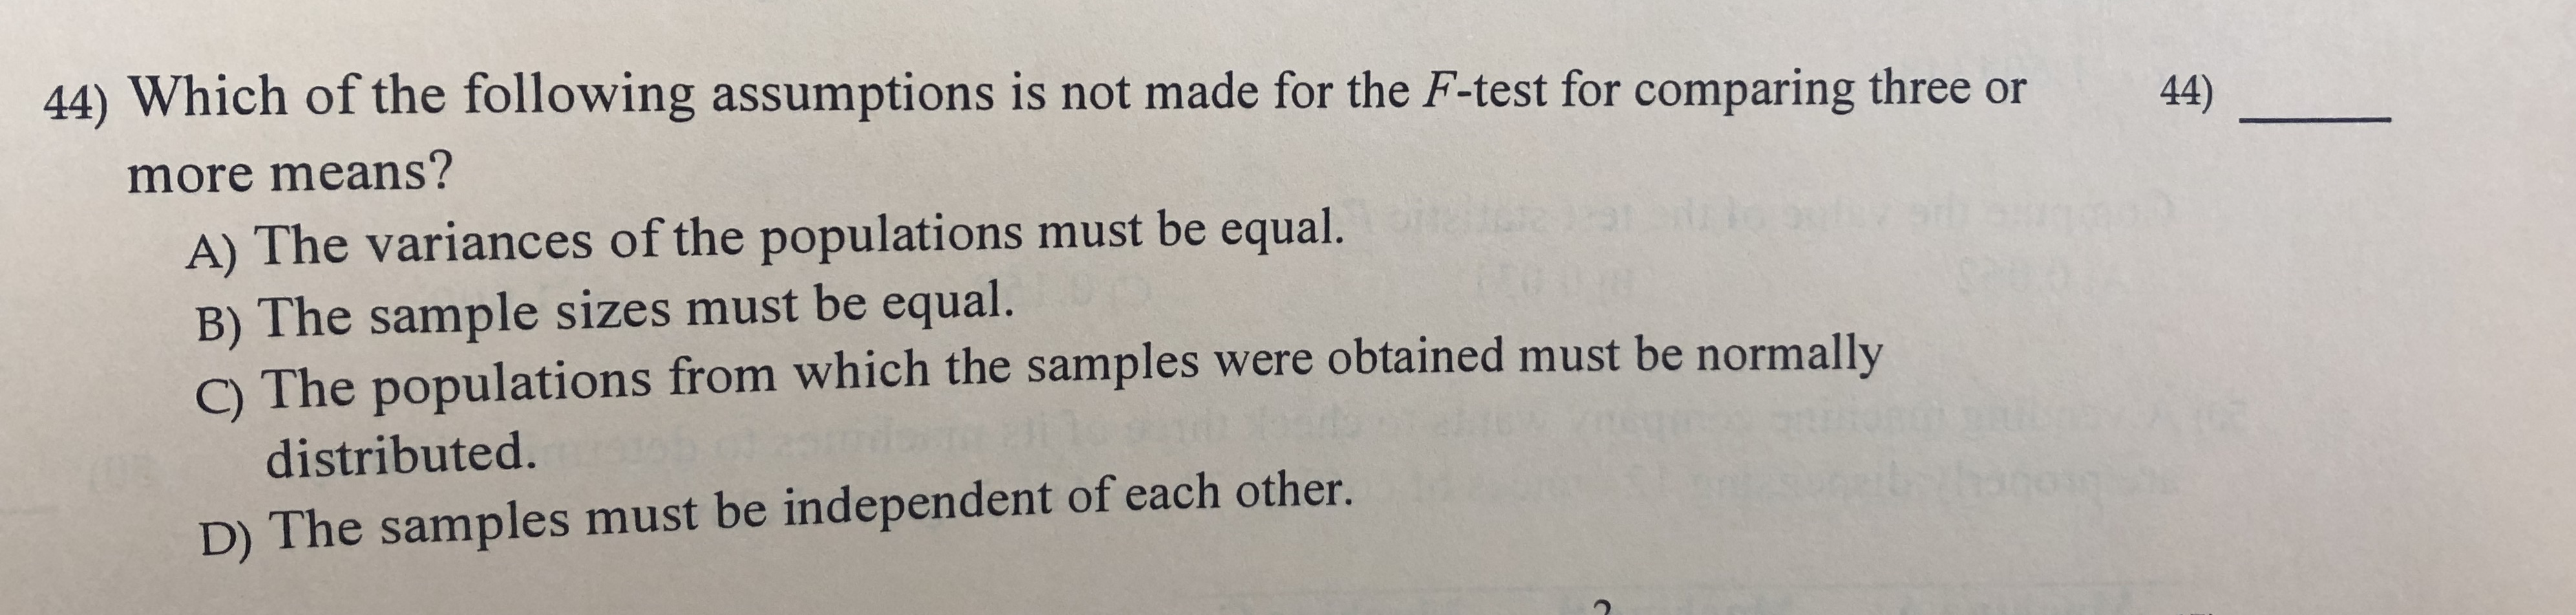 44) Which of the following assumptions is not made for the F-test for comparing three 44) more means? A) The variances of the populations must be equal. B) The sample sizes must be equal. C) The populations from which the samples were obtained must be normally distributed. D) The samples must be independent of each other.